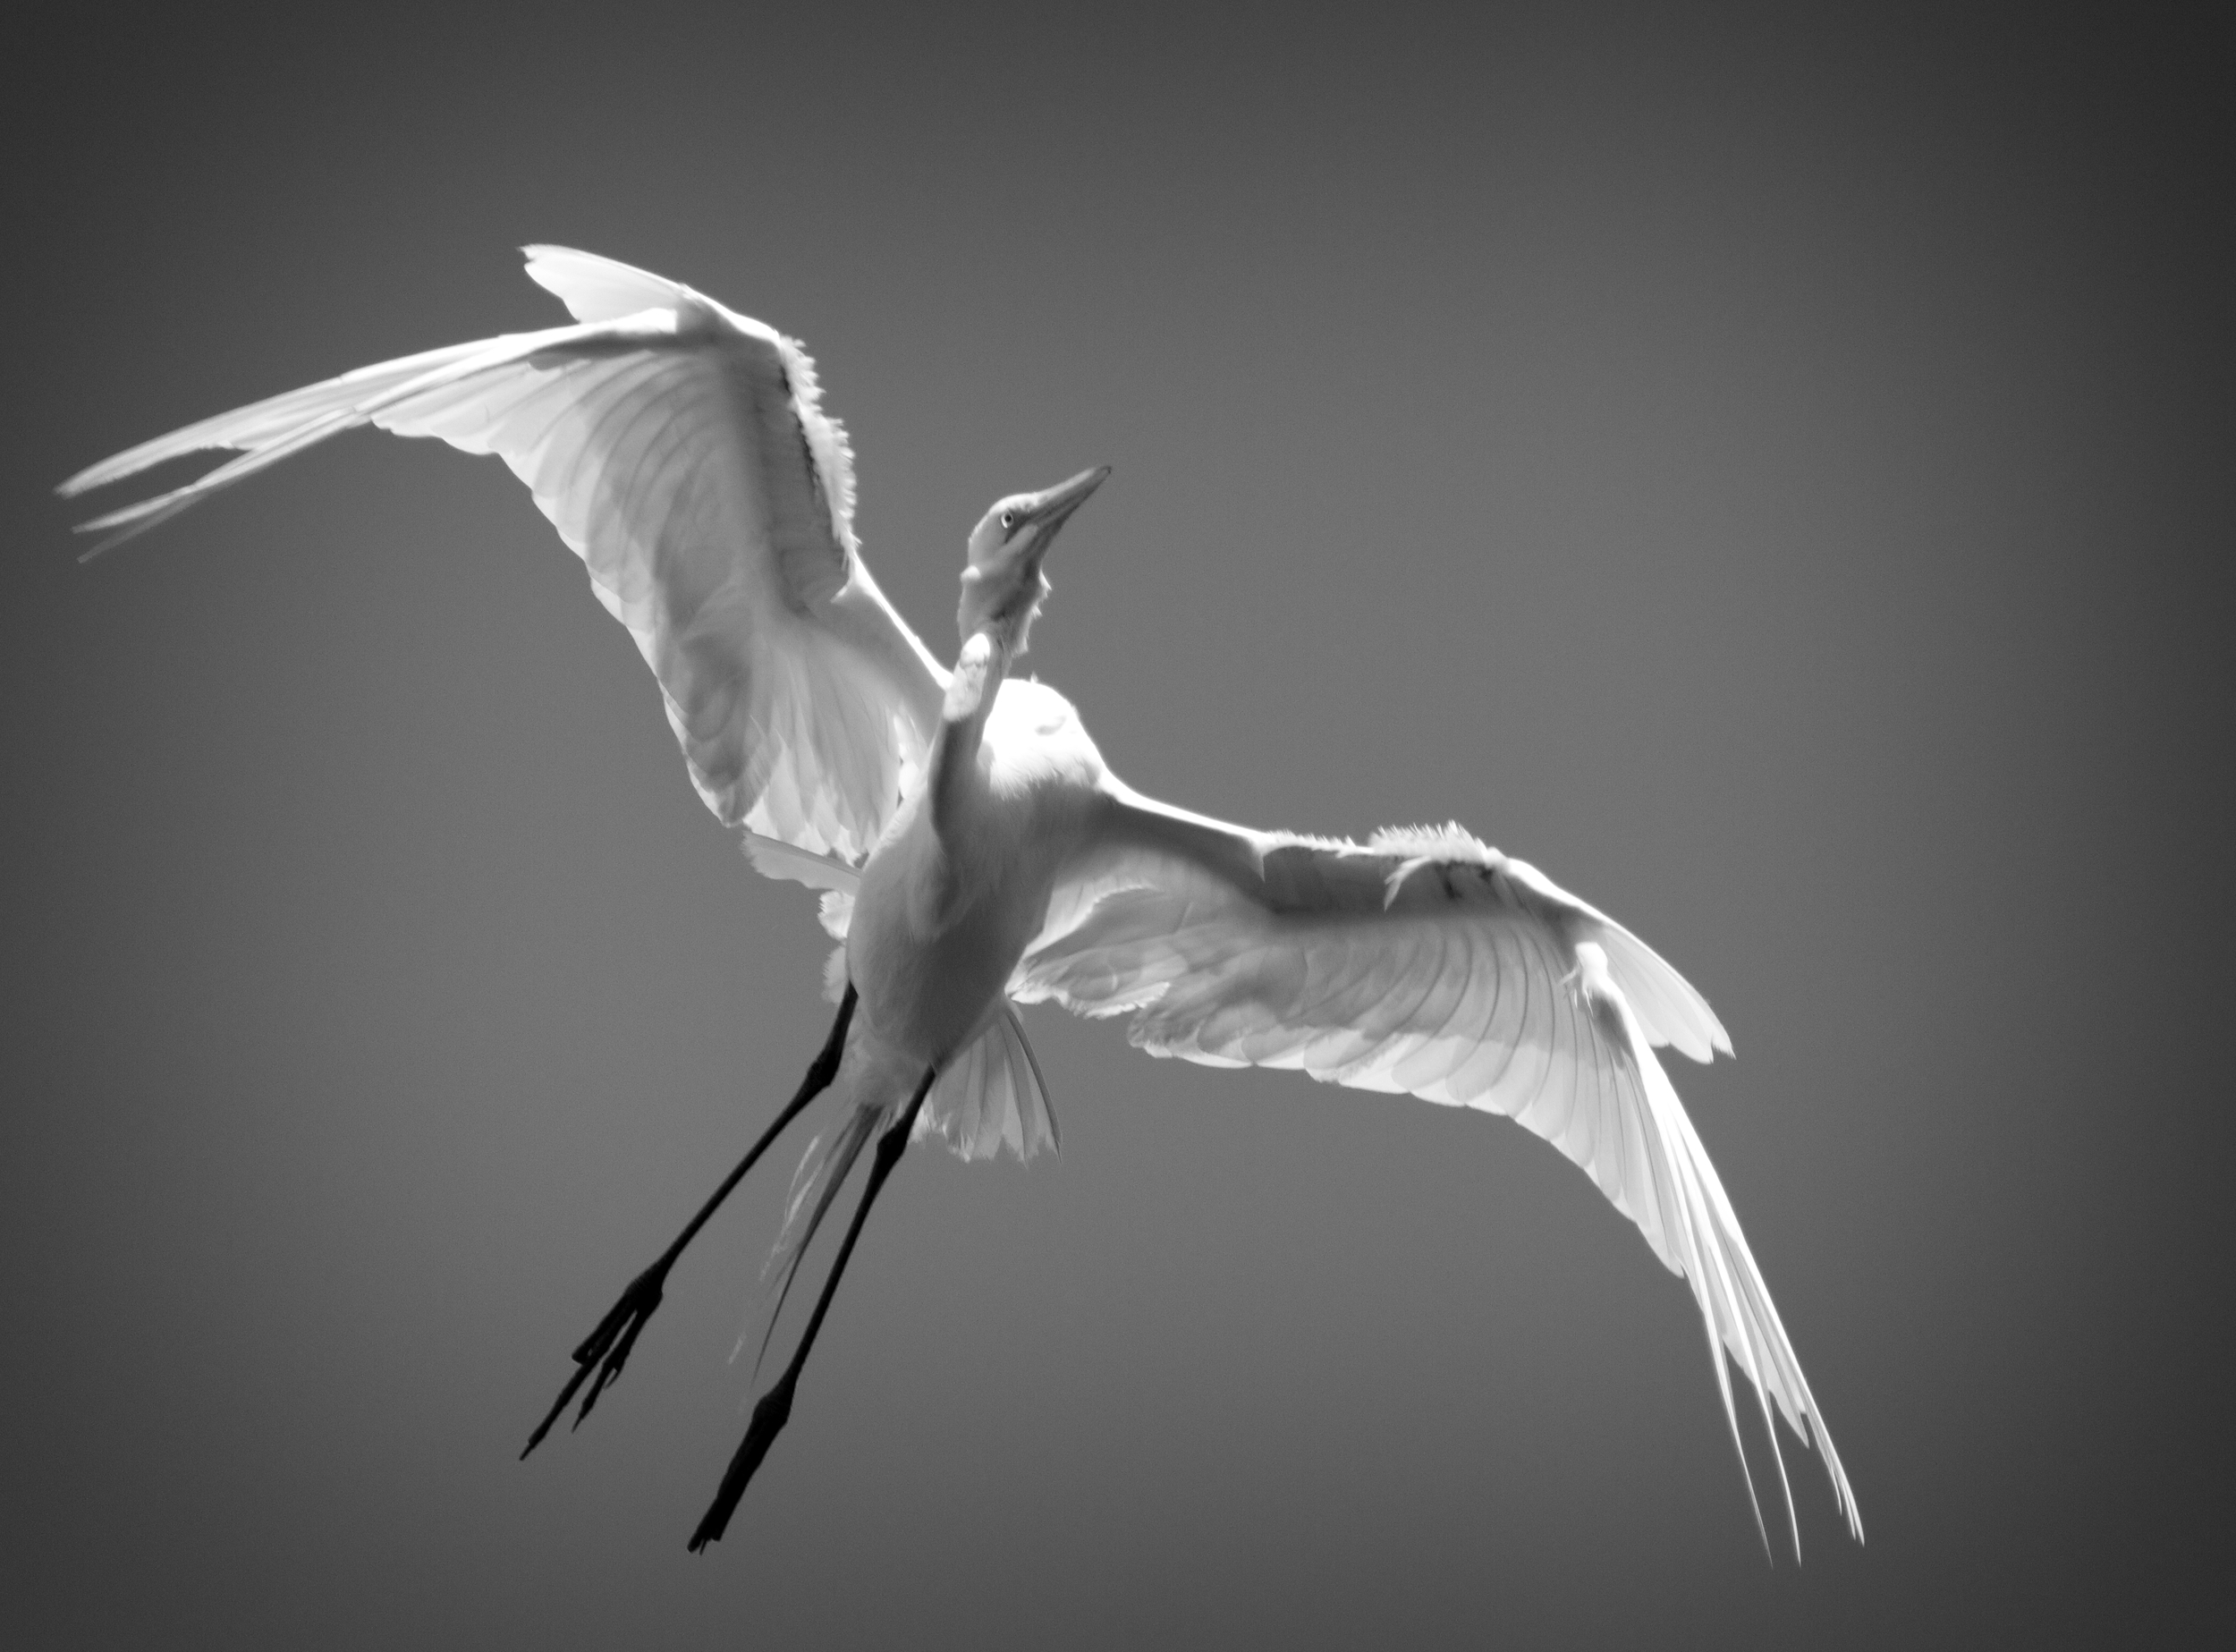 Great Egret in Black and White gives an Ethereal feeling